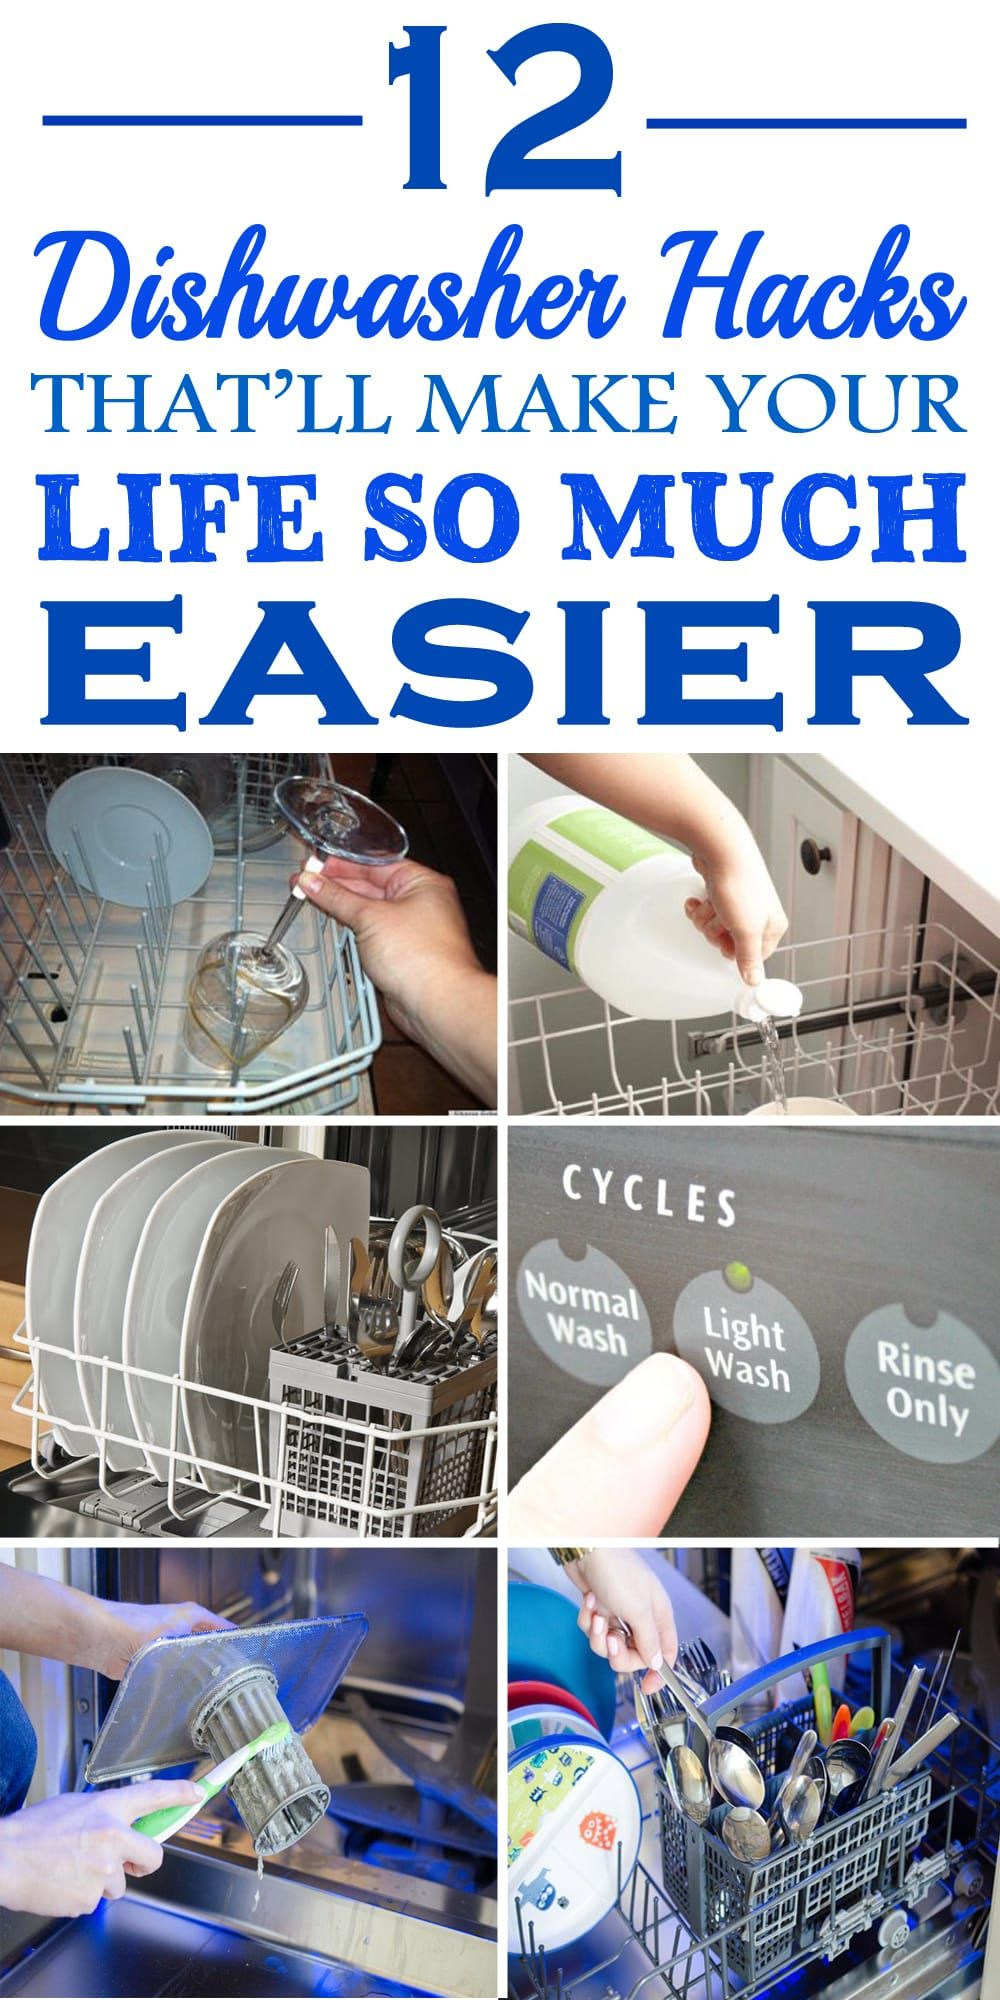 These 12 Dishwasher Hacks Are Just Genius Glad To Have Found